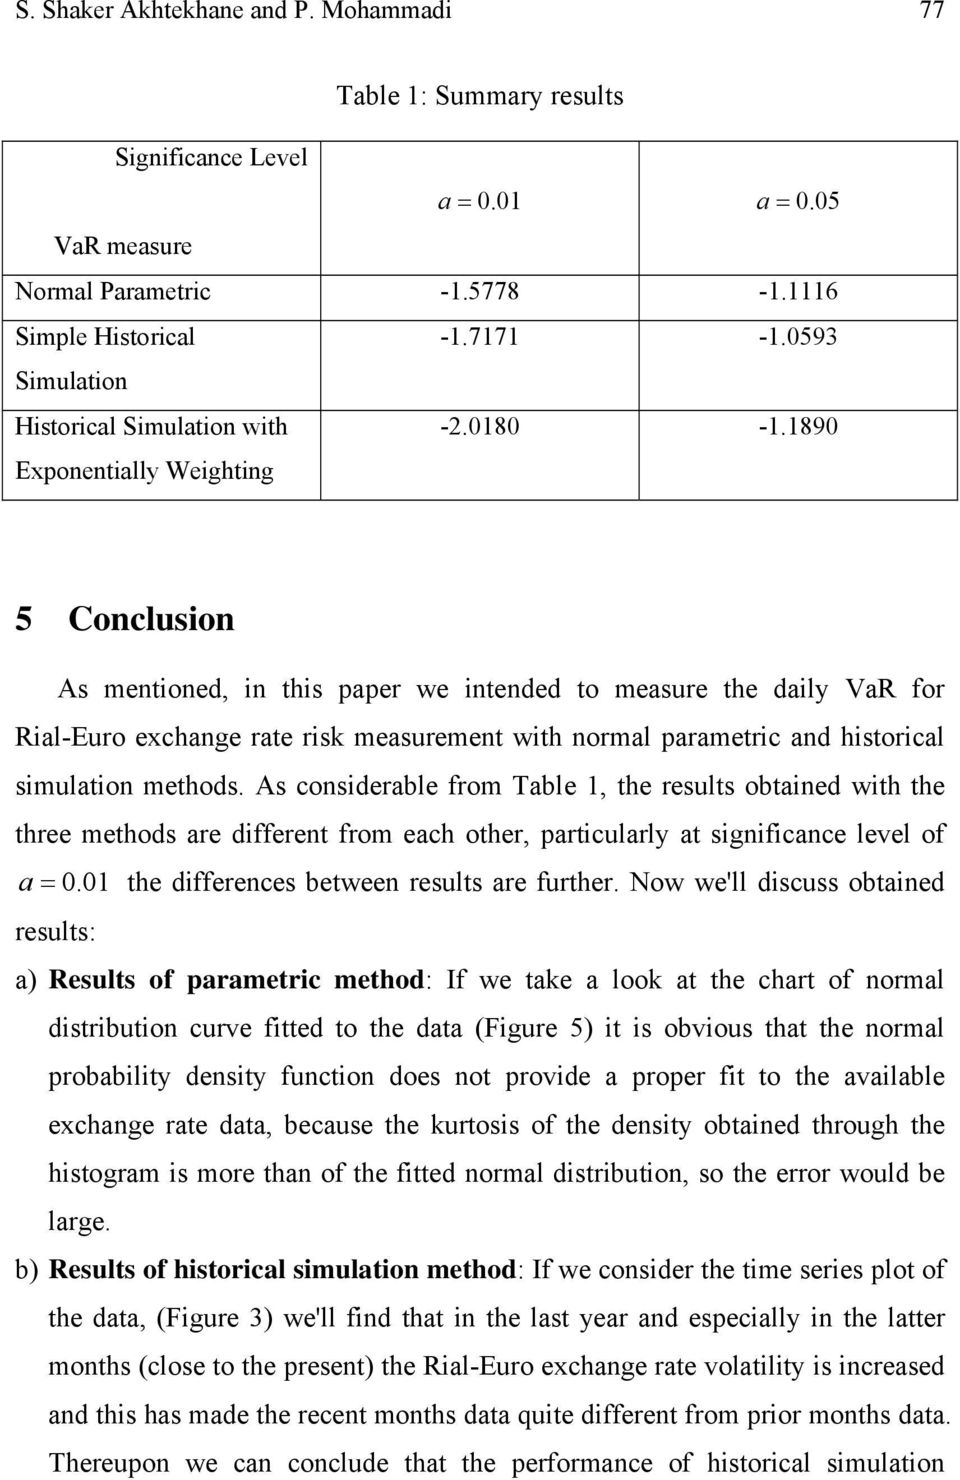 1890 5 Conclusion As mentioned, in this paper we intended to measure the daily VaR for Rial-Euro exchange rate risk measurement with normal parametric and historical simulation methods.